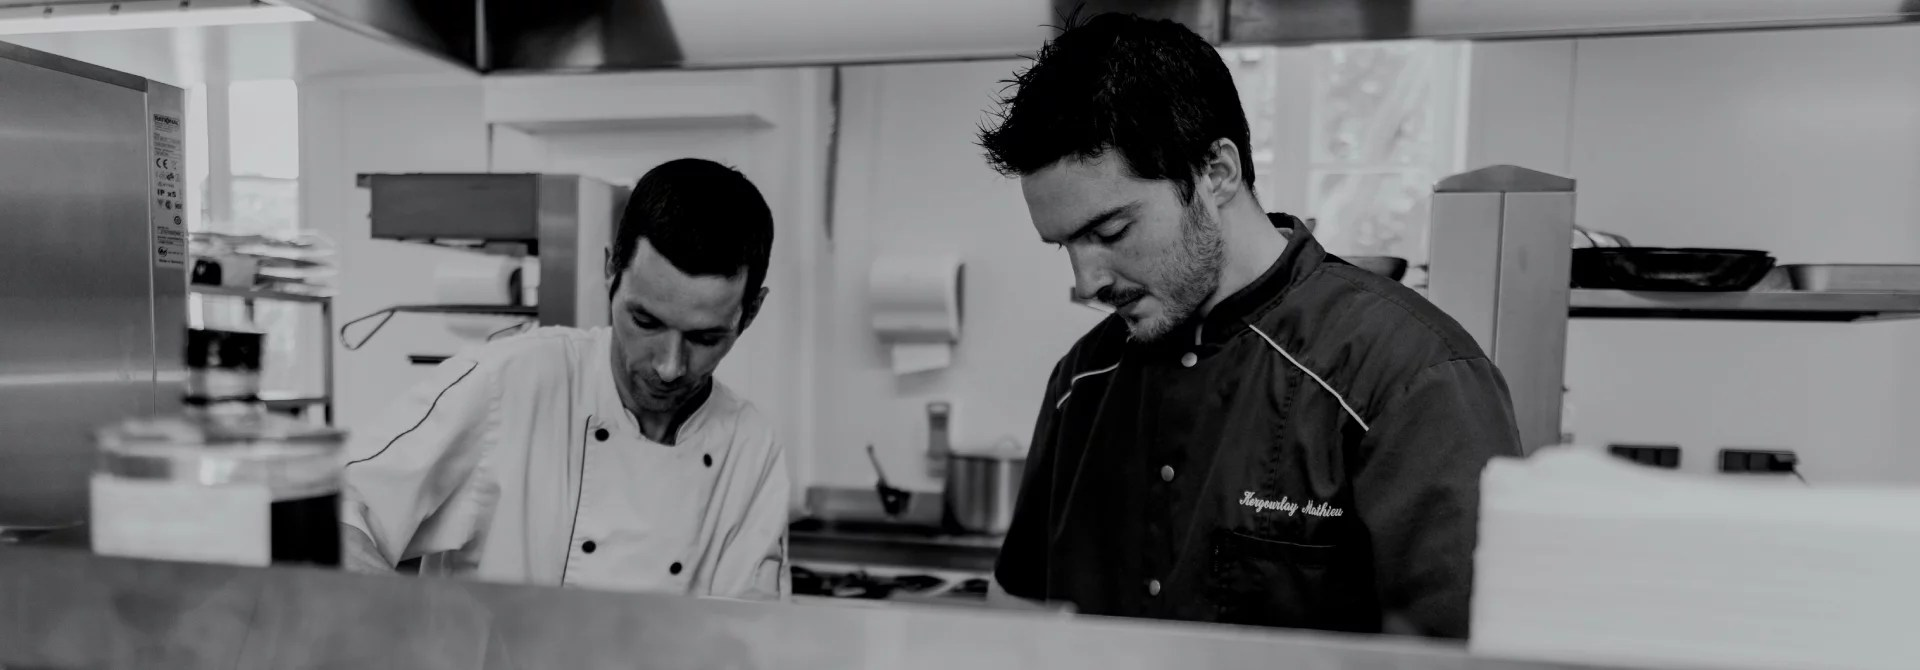 Cuisines Jean De Mathieu The Chef And His Team Mathieu Kergourlay